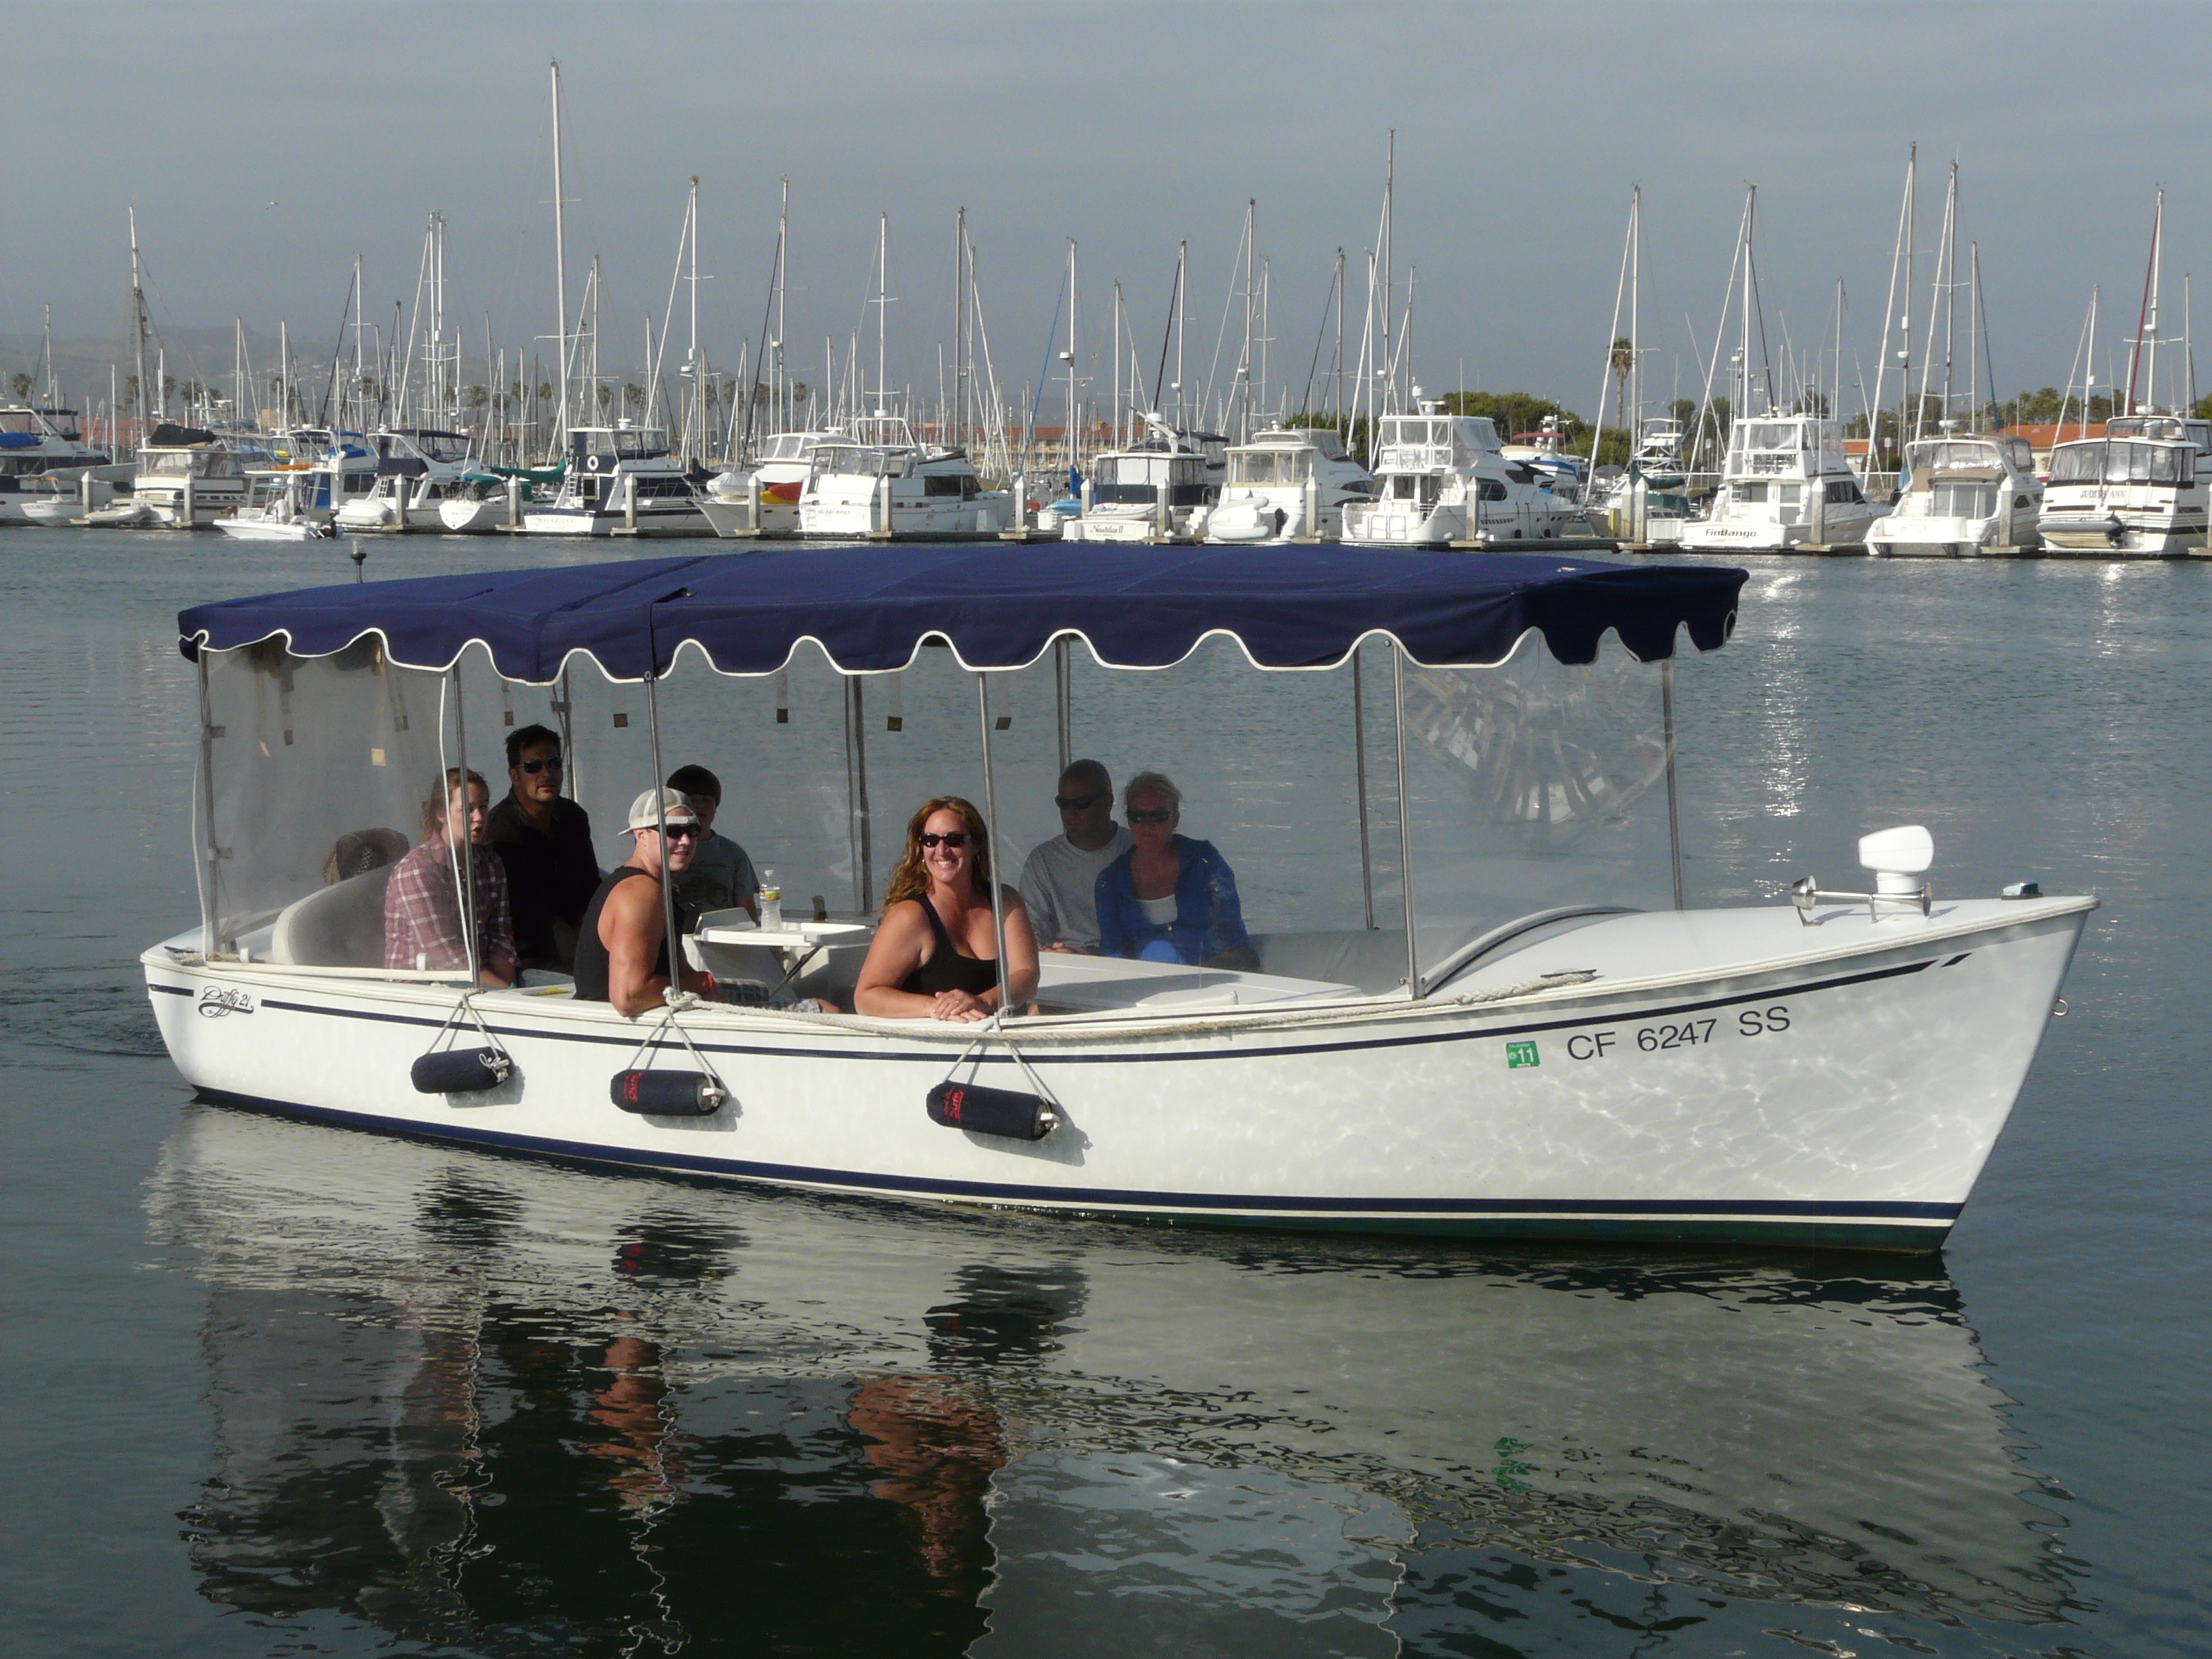 Now available at Newport Harbor Boat Rentals